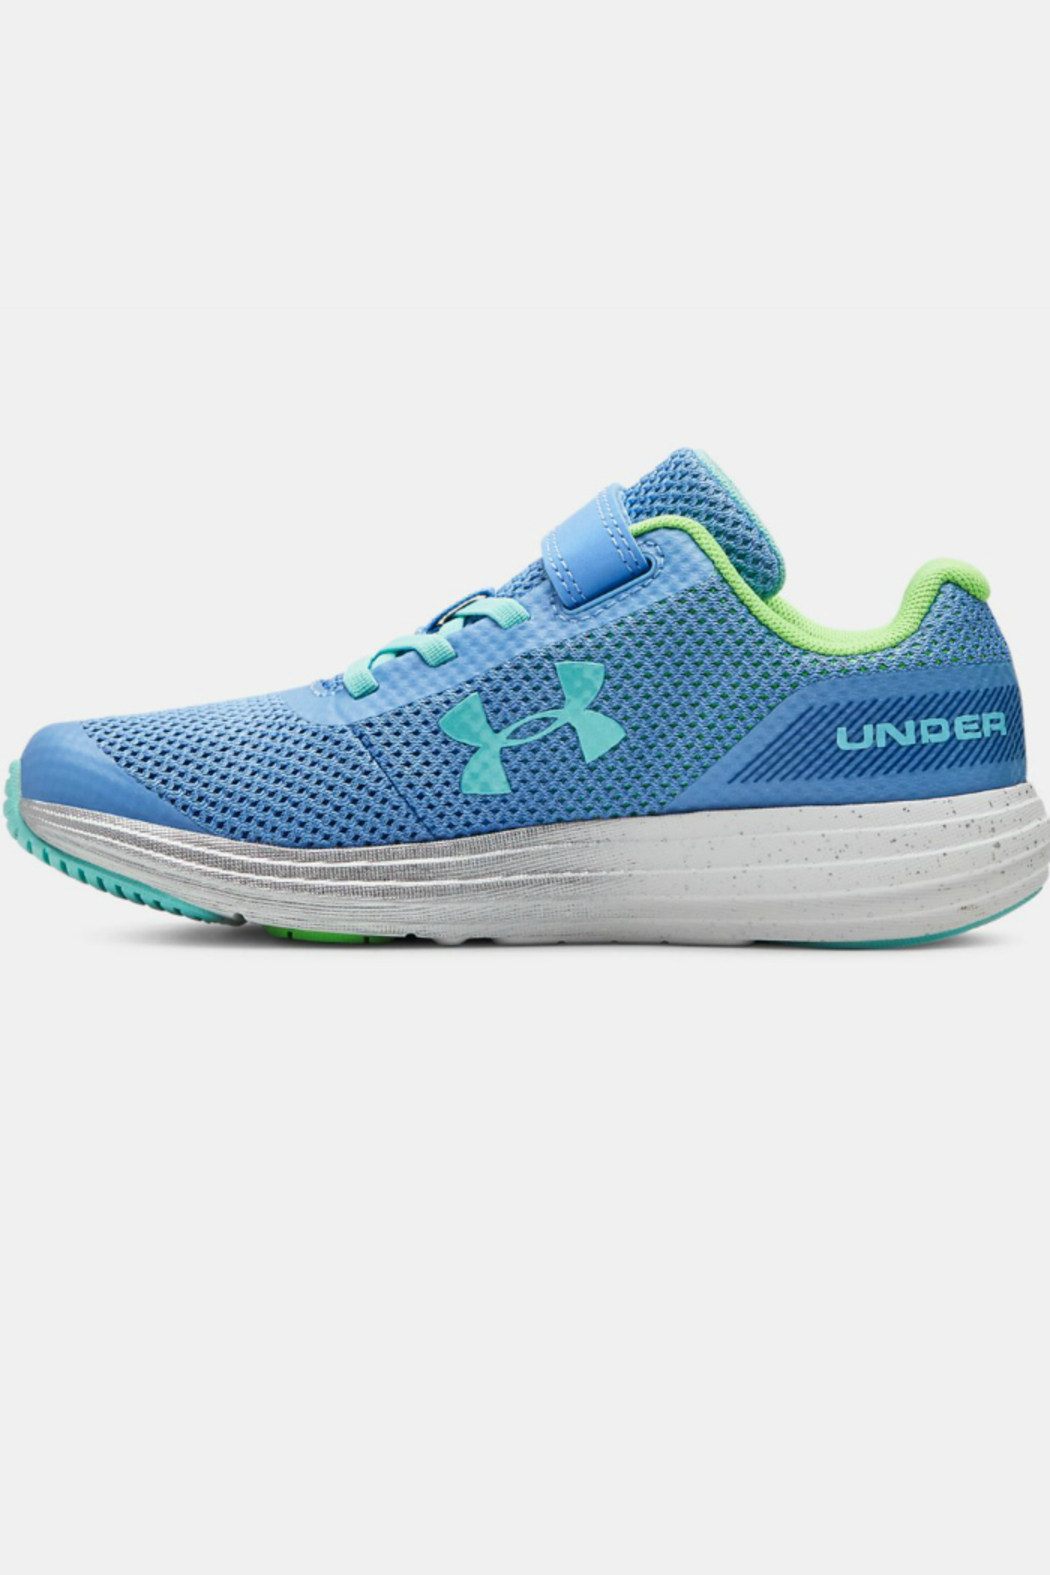 Under Armour GPS SURGE RN PRISM - Front Full Image